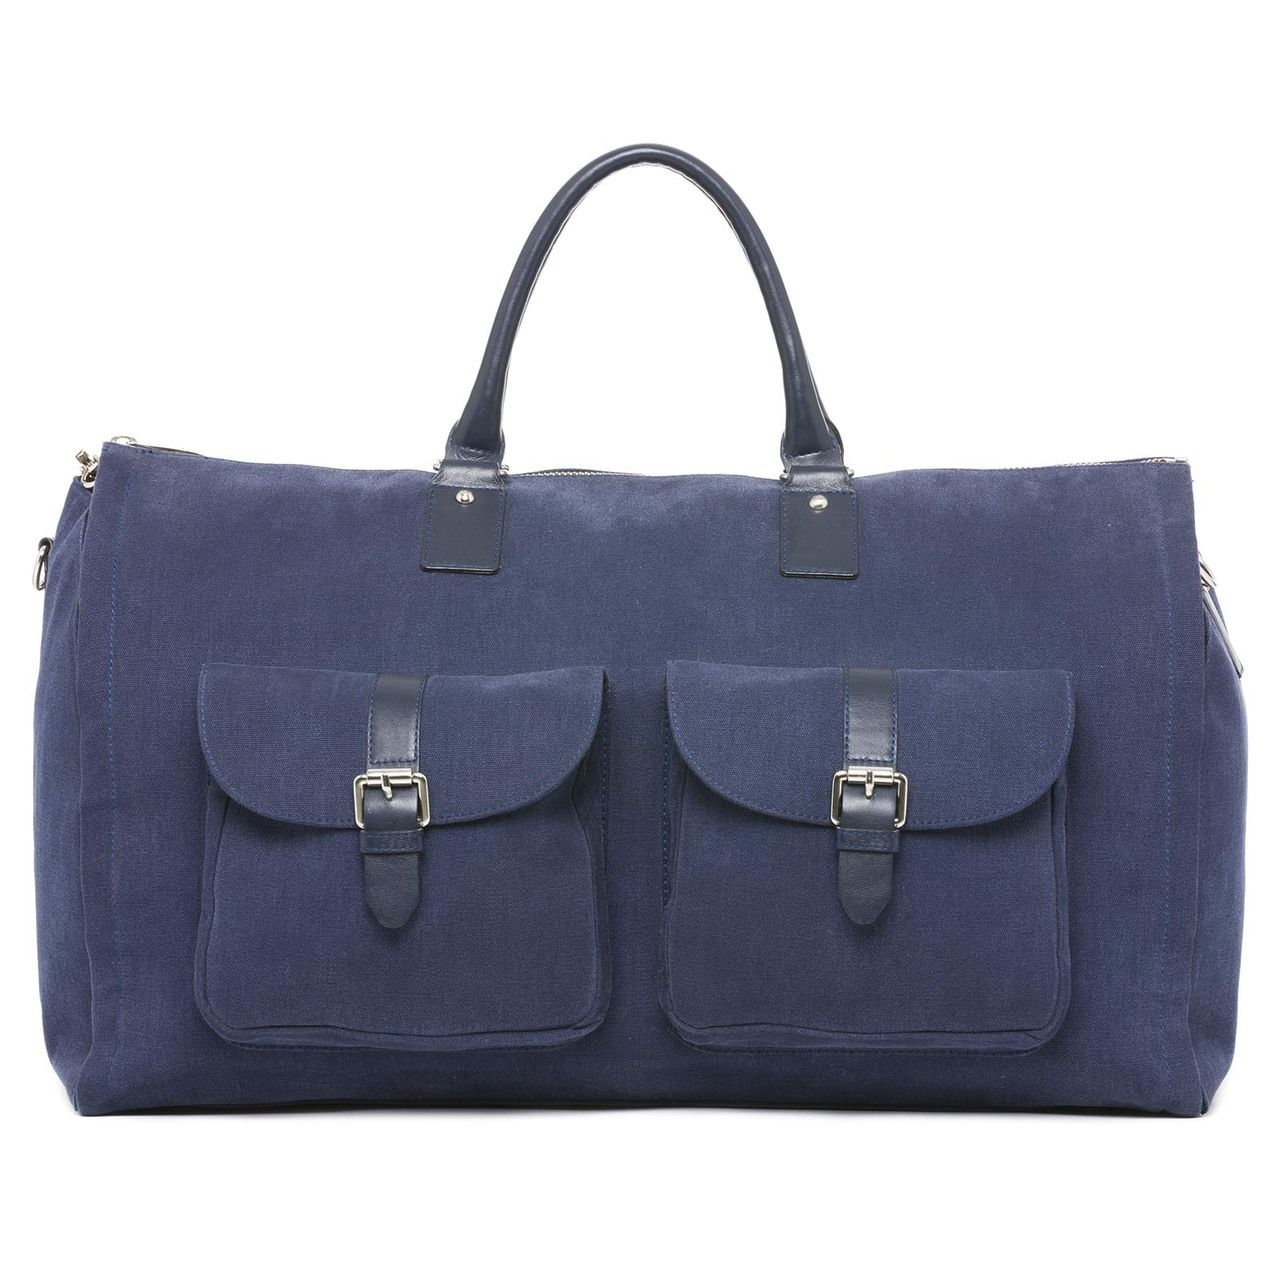 256e2d5d2858 Waxed Canvas Garment Weekender Bag - Navy - HOOK   ALBERT